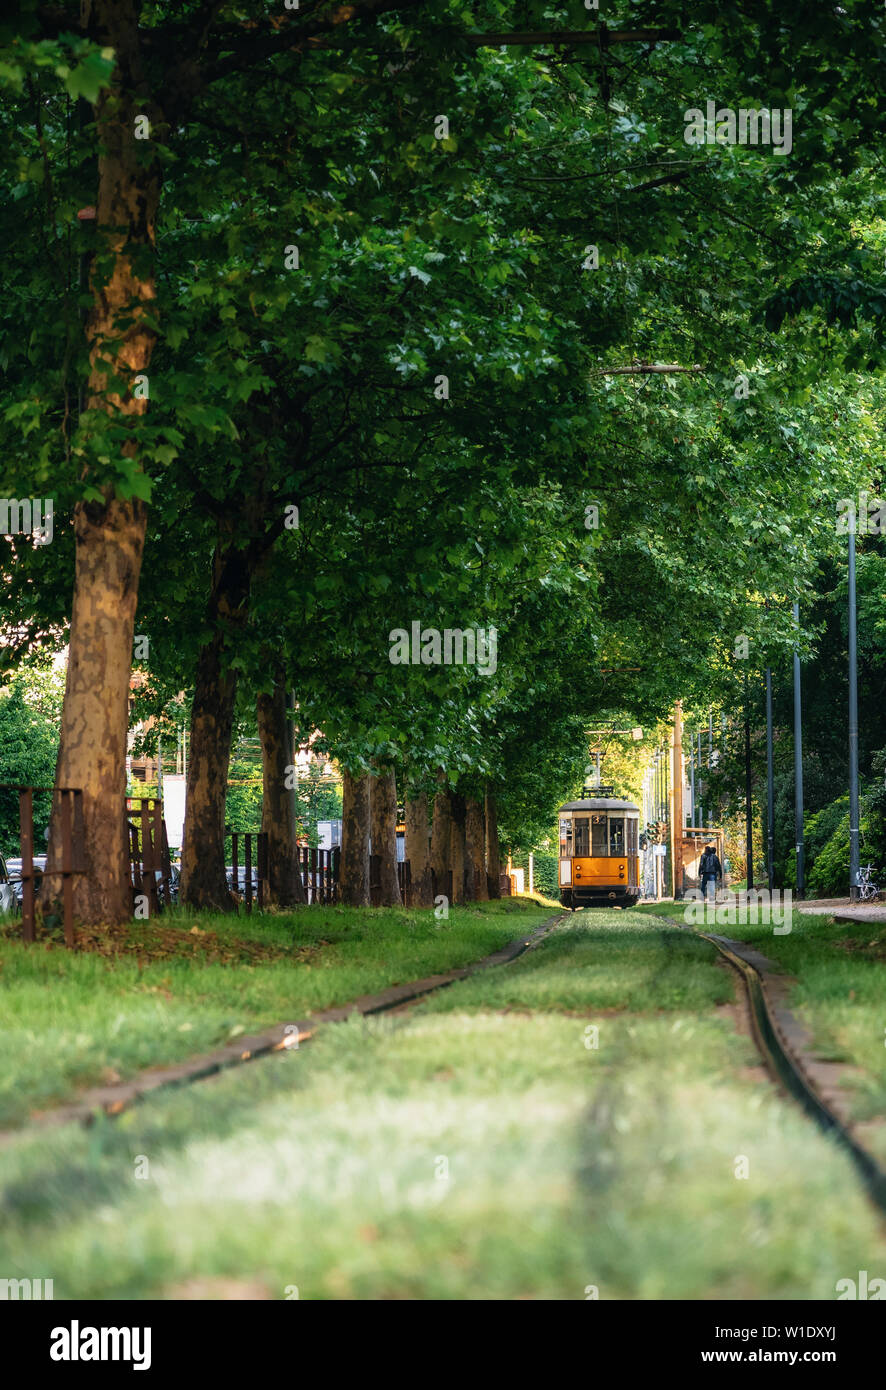 Old red city tram goes through green tunnel in dense forest in Milan, Italy Stock Photo